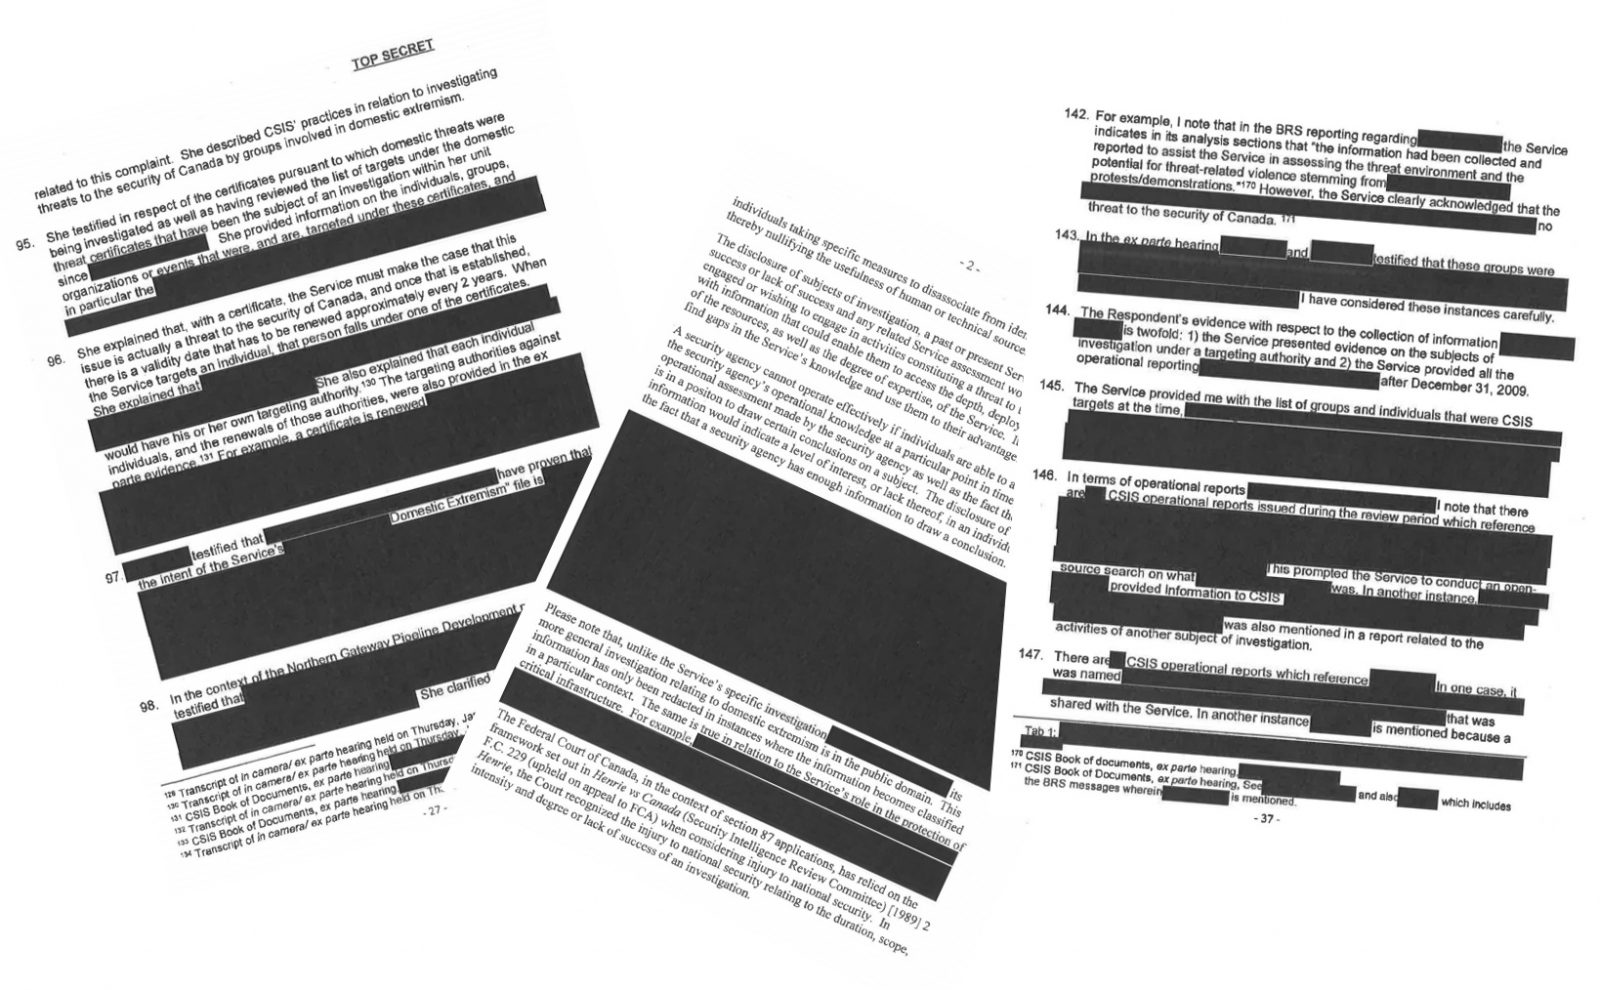 Protest Papers' provide rare look inside state surveillance